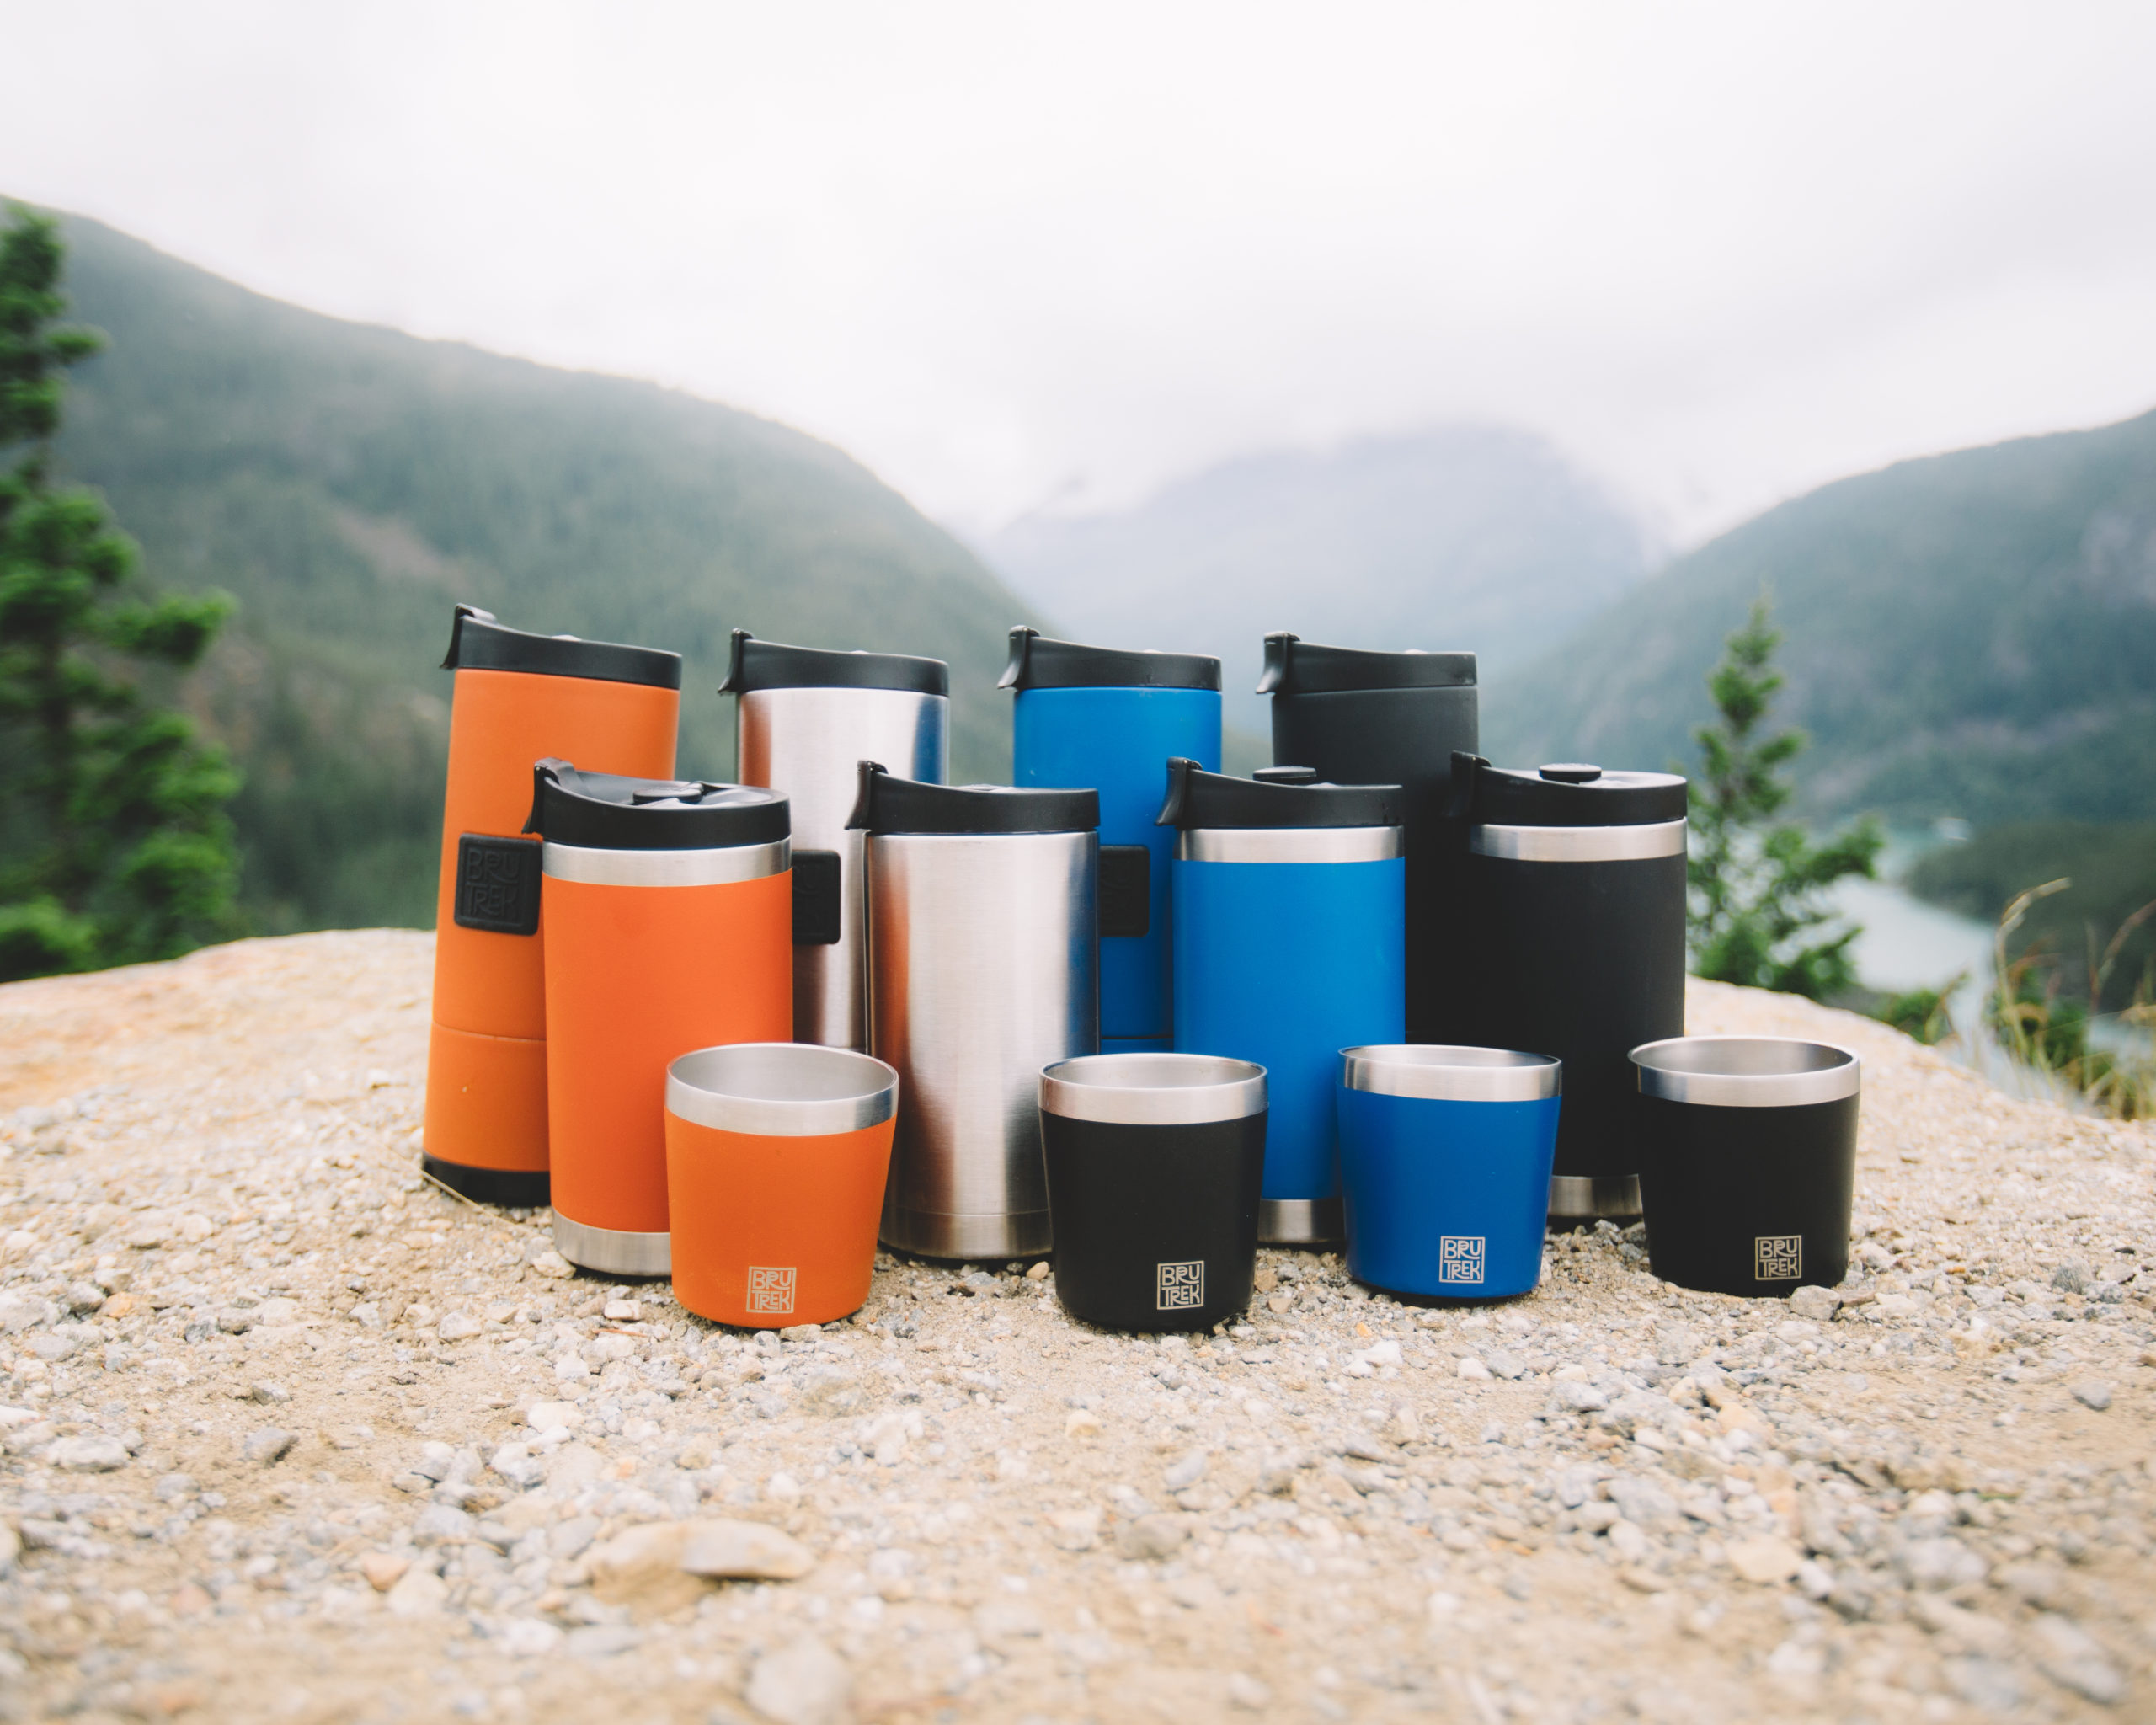 photo of brutrek french presses and cups arranged by color on a rock with mountains in the background